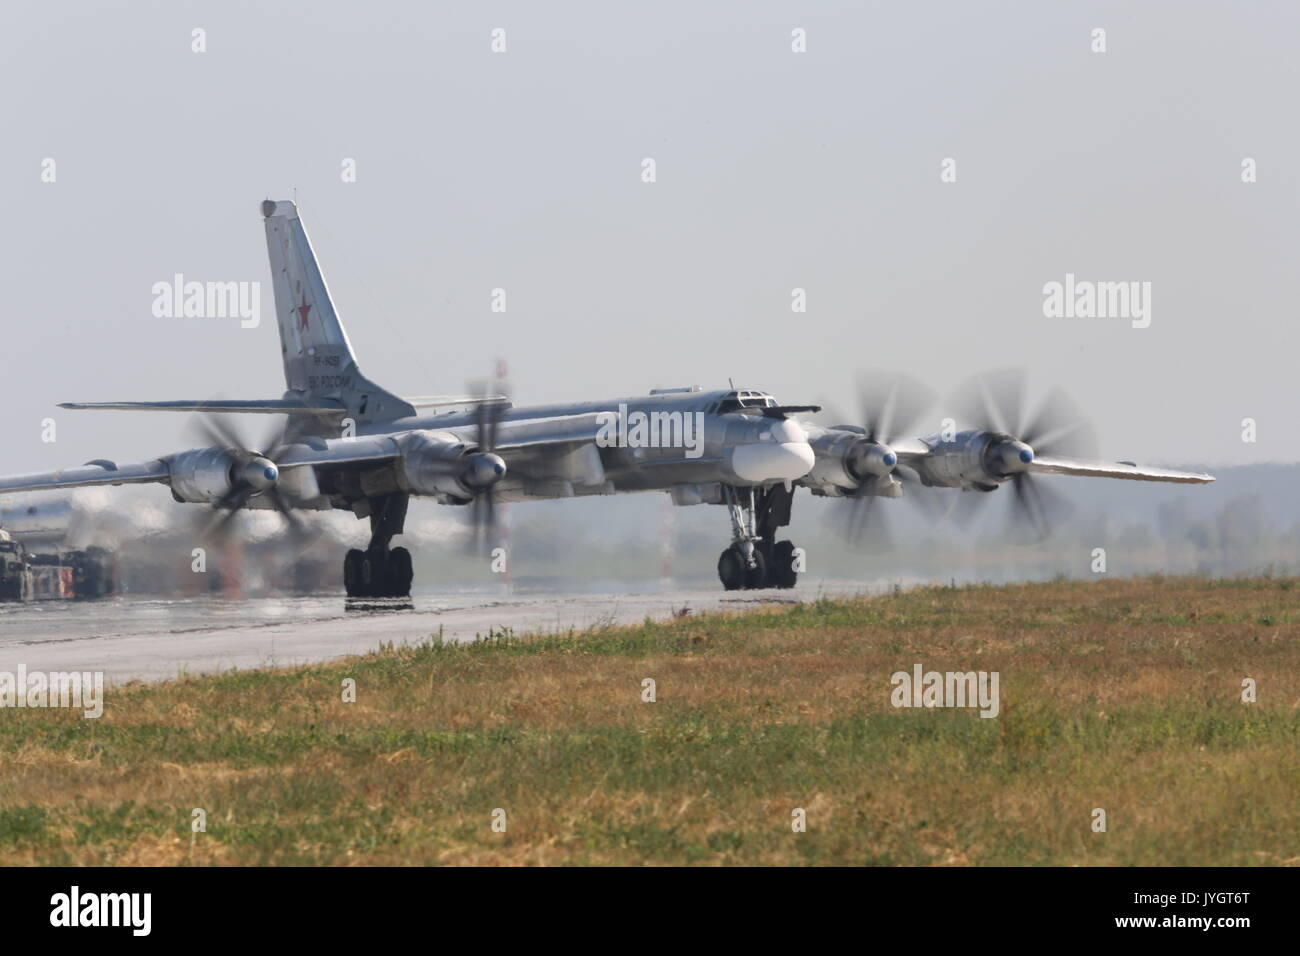 Saratov Region, Russia. 19th Aug, 2017. A Tupolev Tu-95 four-engine turboprop-powered strategic bomber during an open day at Russia's Engels Air Force Base. Credit: Marina Lystseva/TASS/Alamy Live News - Stock Image